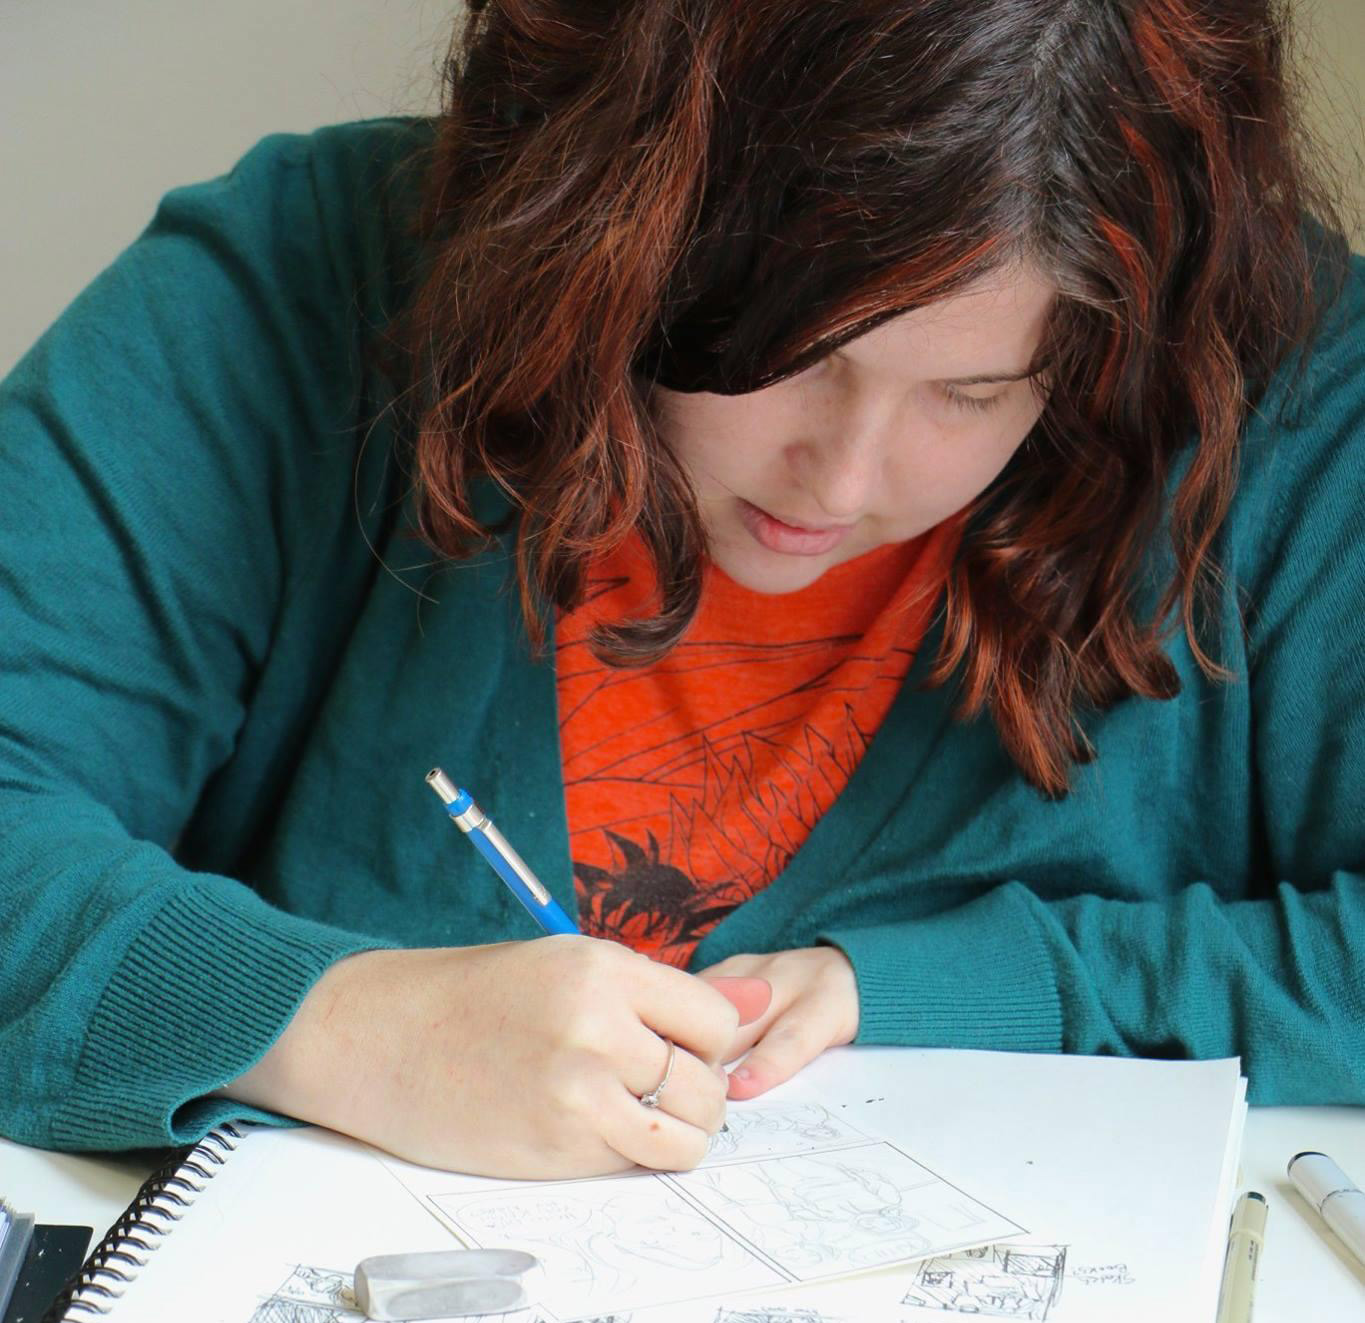 Photo of a white woman with brown hair, wearing a teal cardigan over an orange shirt, drawing.